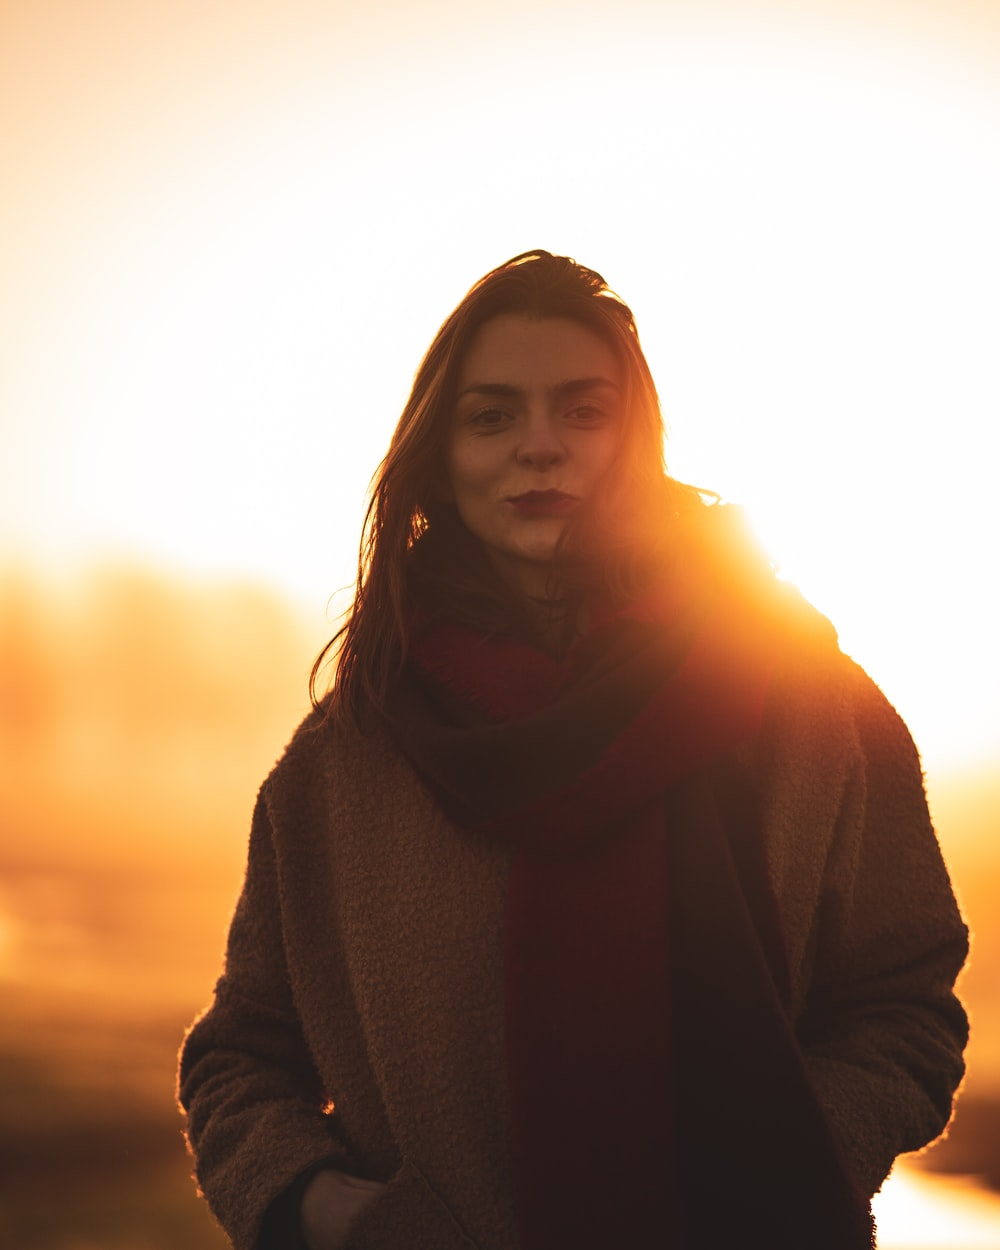 woman in black sweater standing during sunset